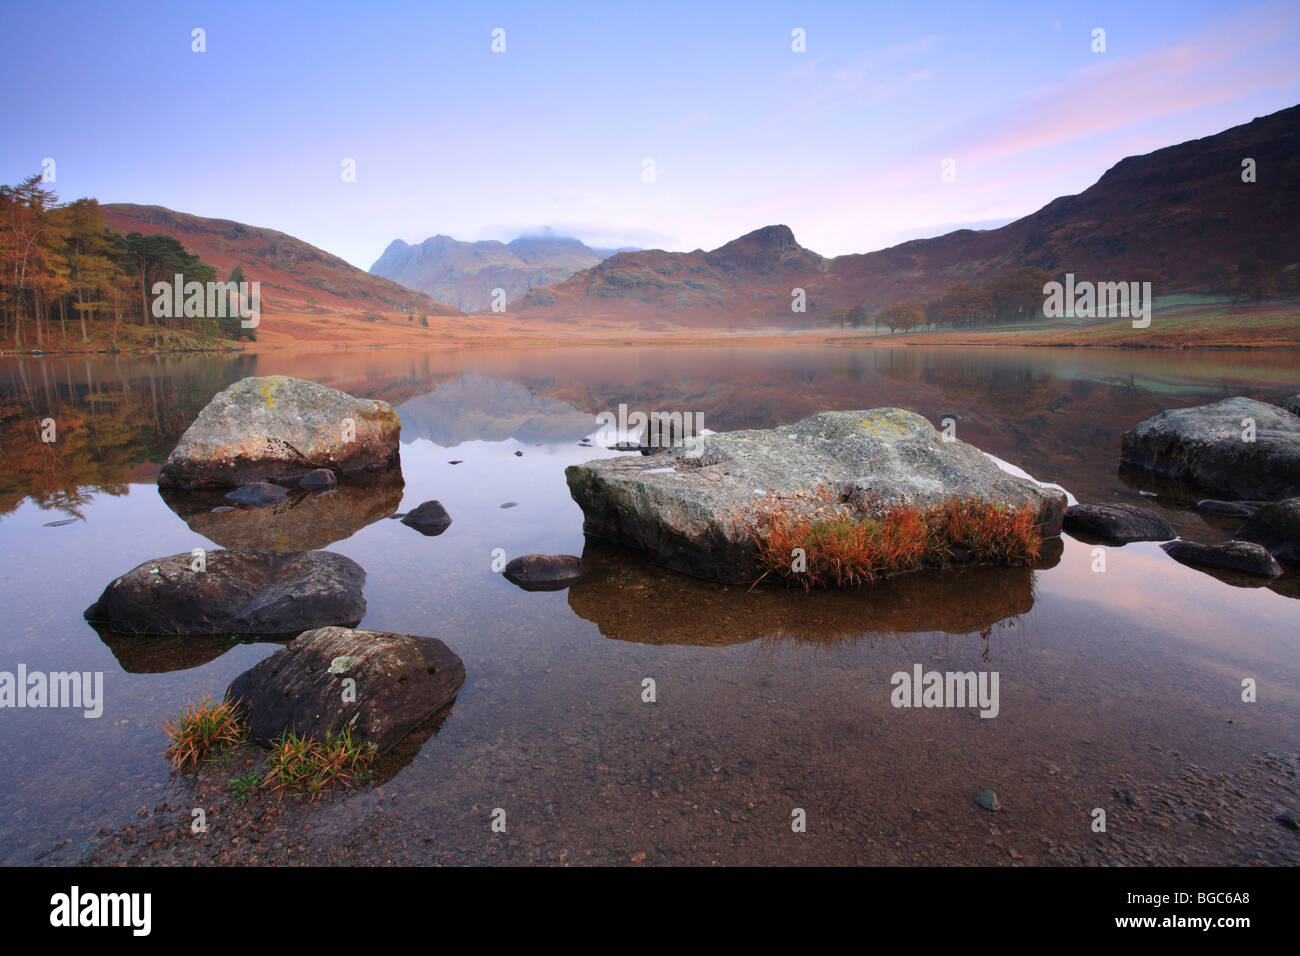 'Blea Tarn peu les rochers de Langdale reflétée au bord de l'eau, Parc National de Lake District, Photo Stock